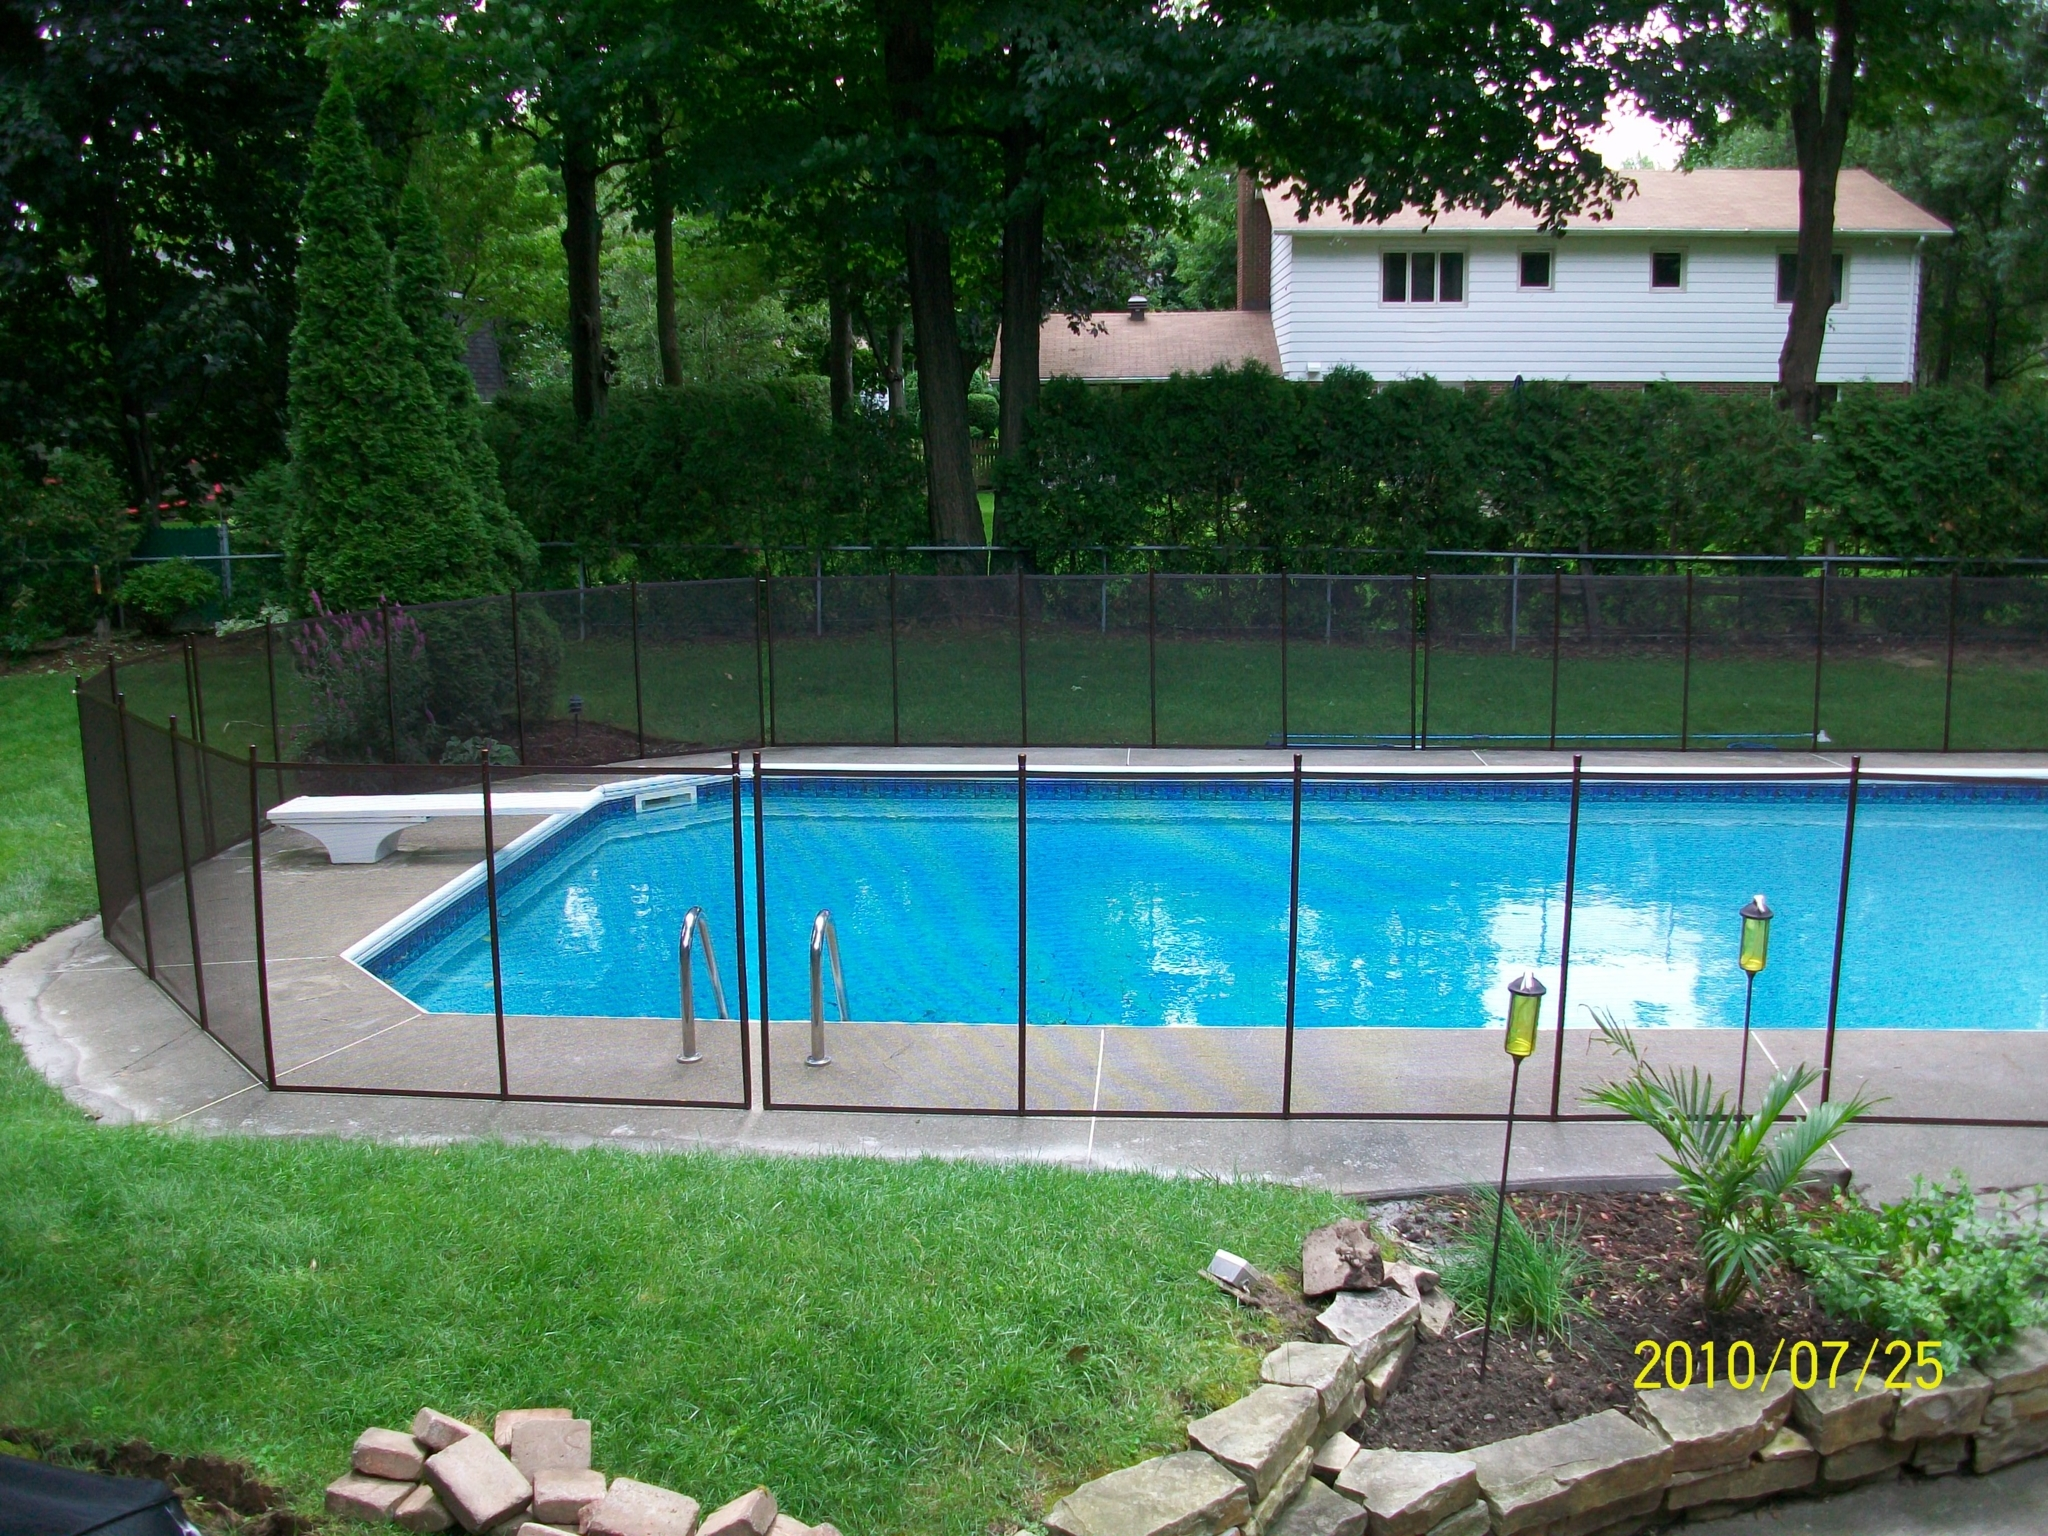 cl tures amovibles pool guard montr al qc ourbis